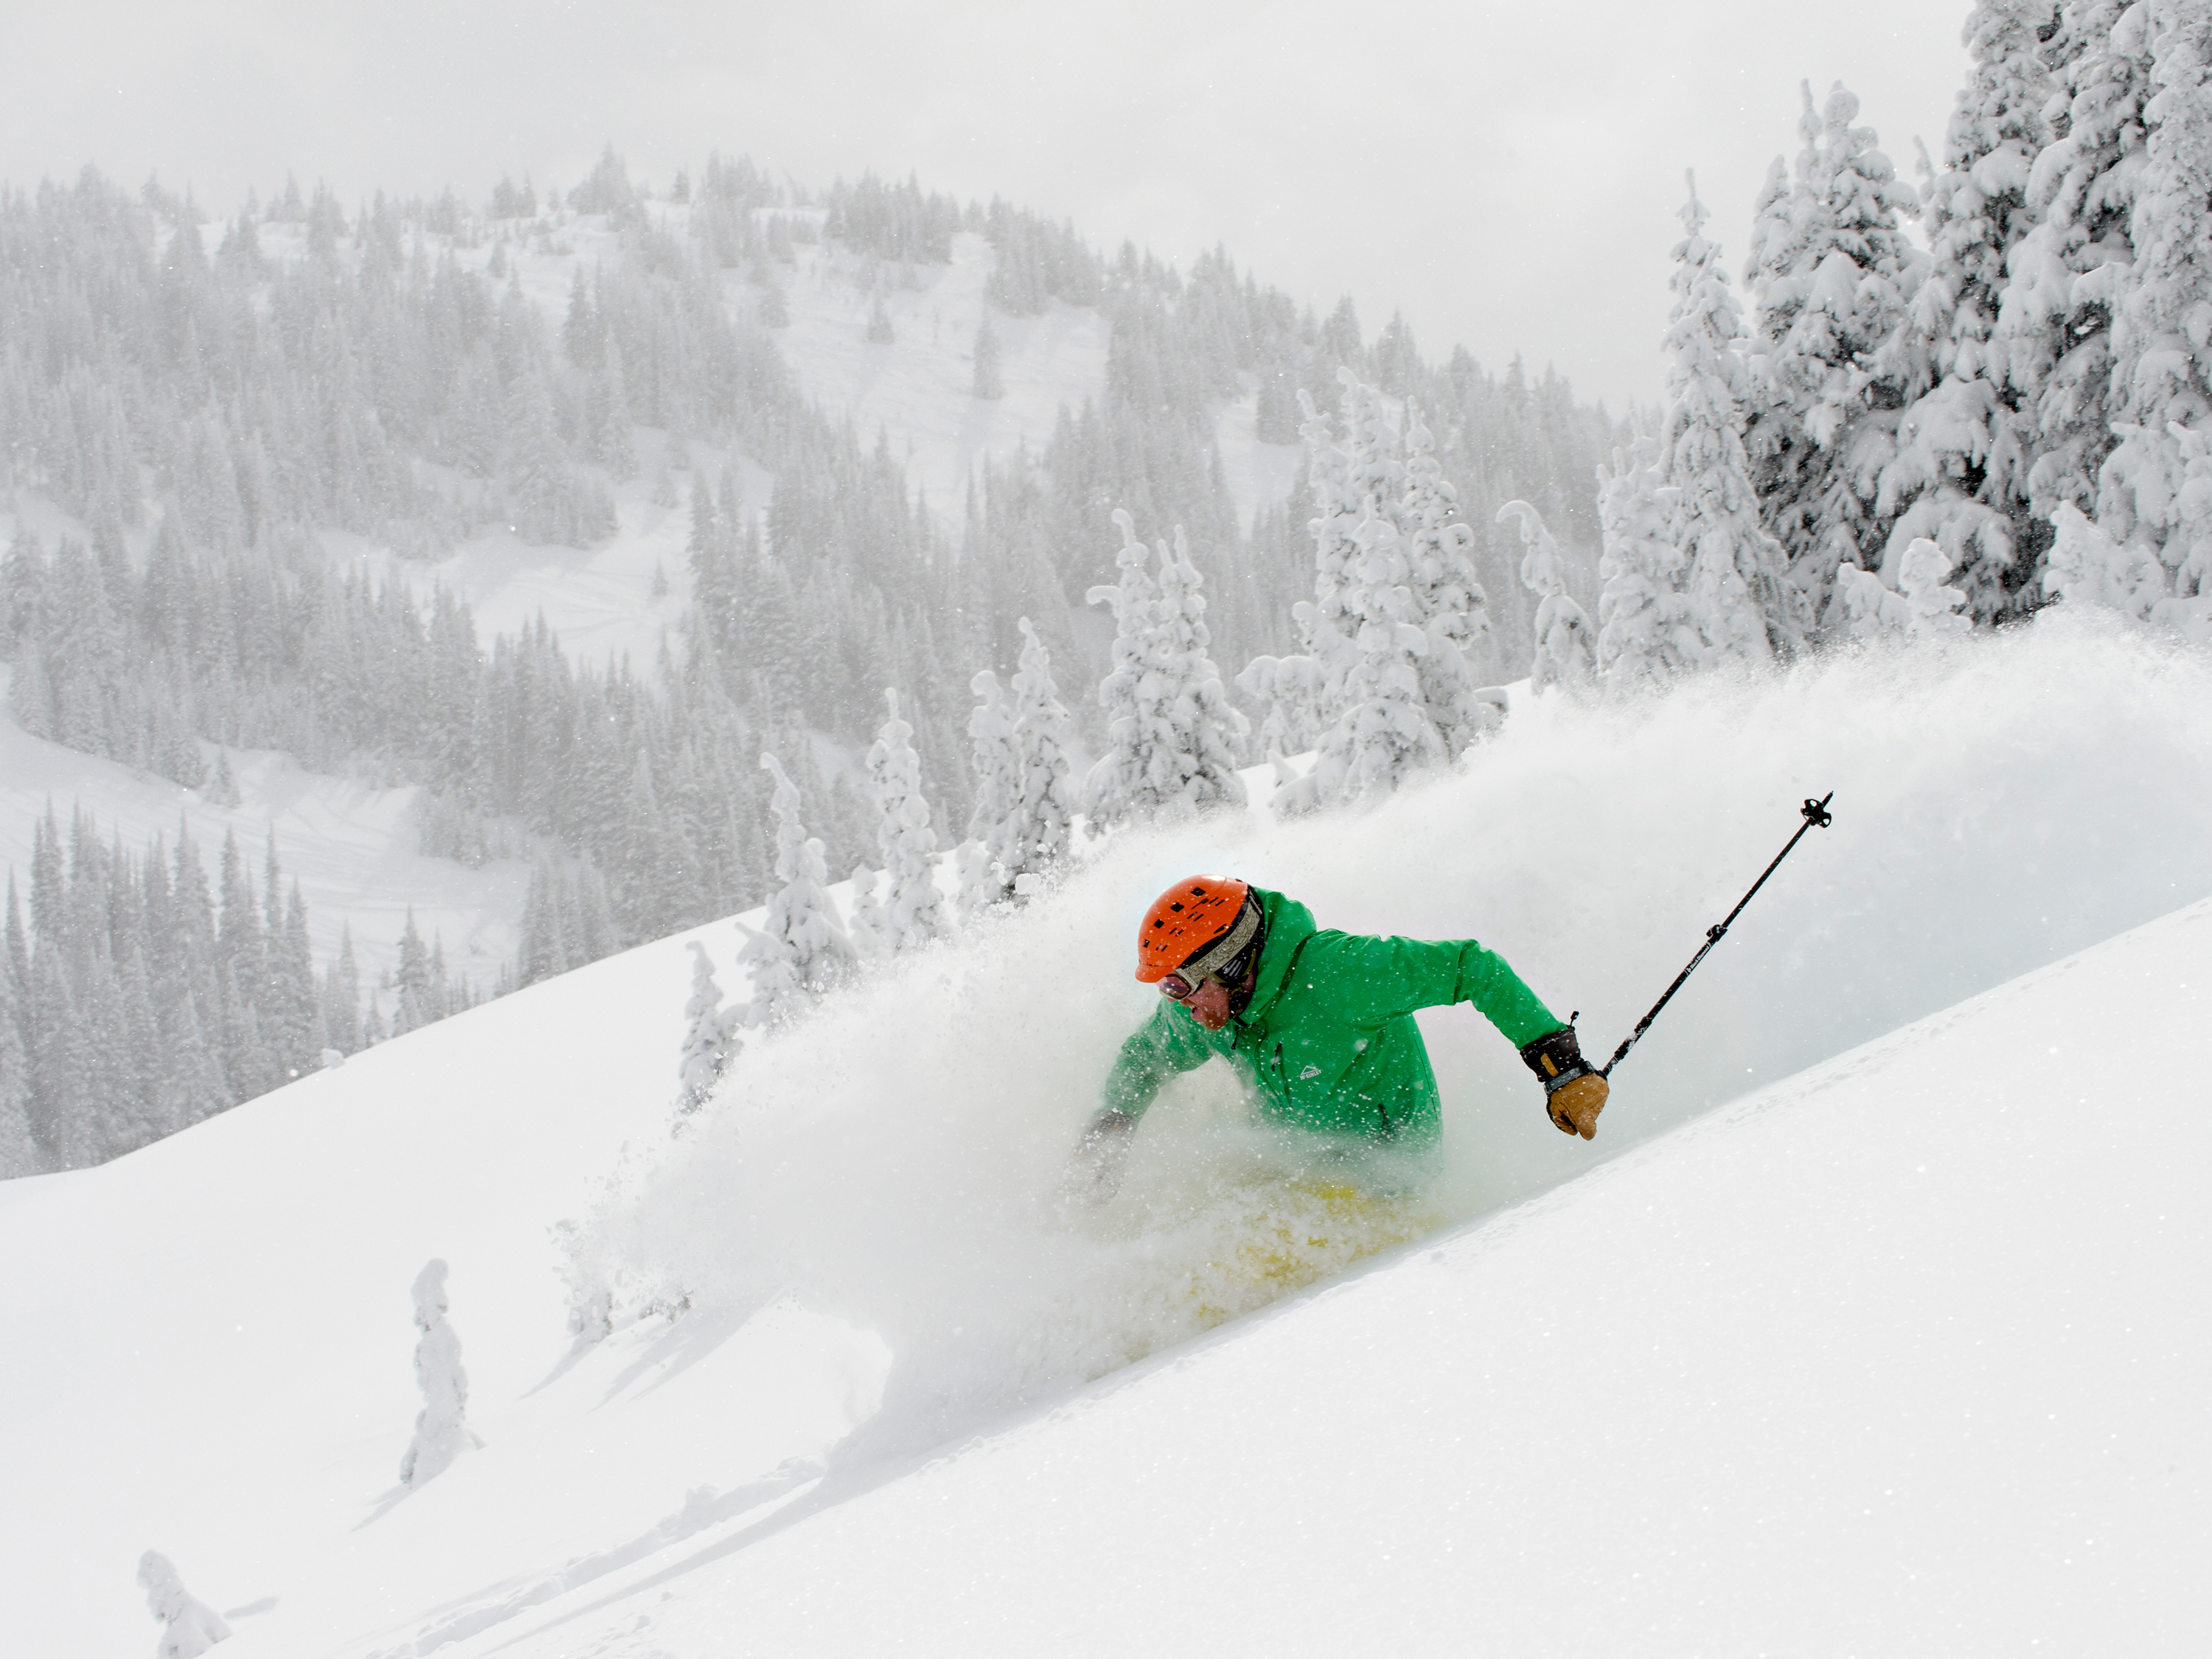 Skier in deep powder